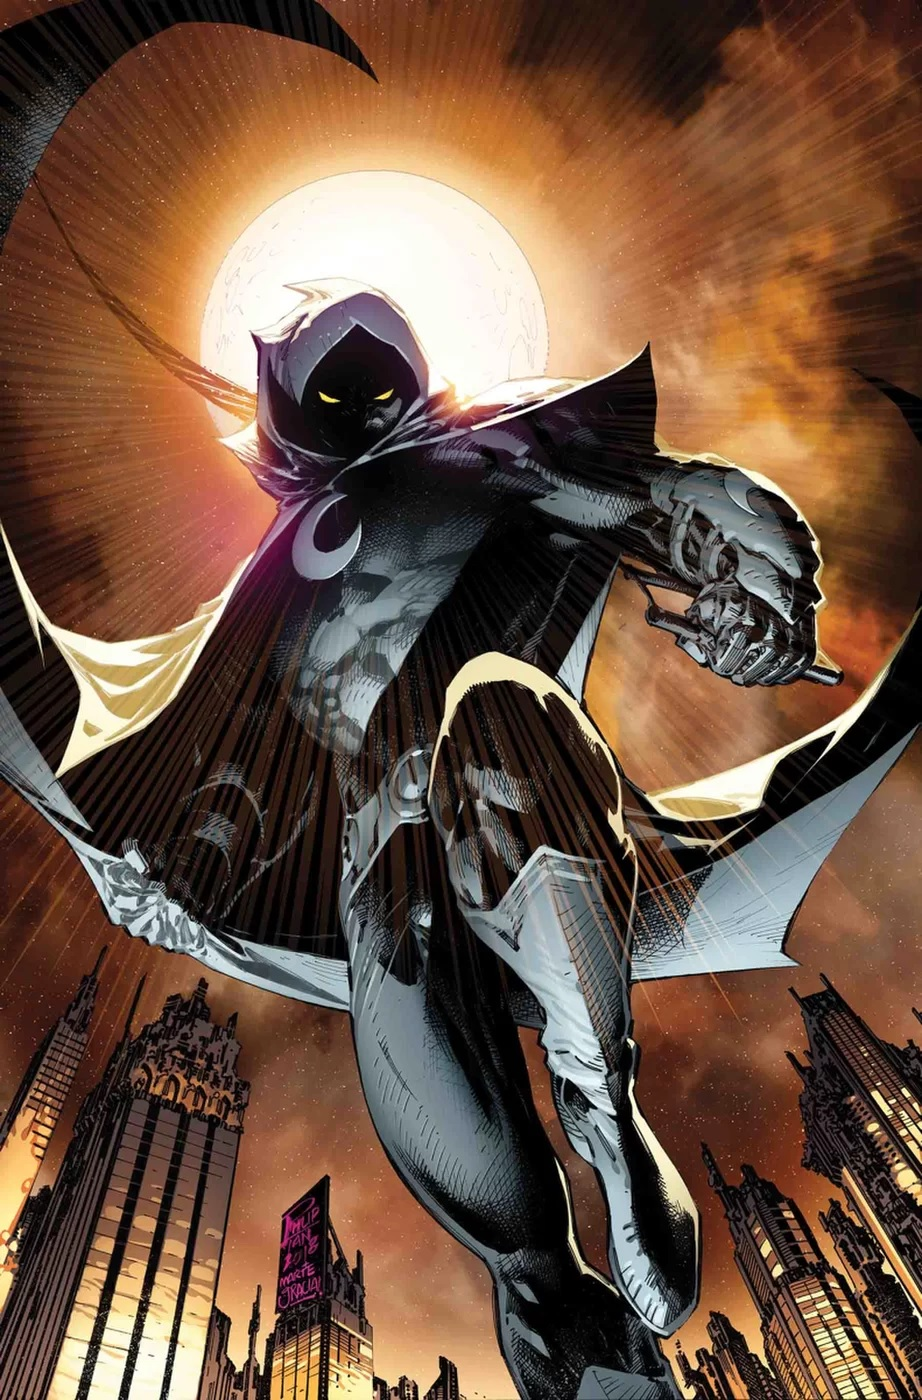 Moon Knight Vs Black Panther